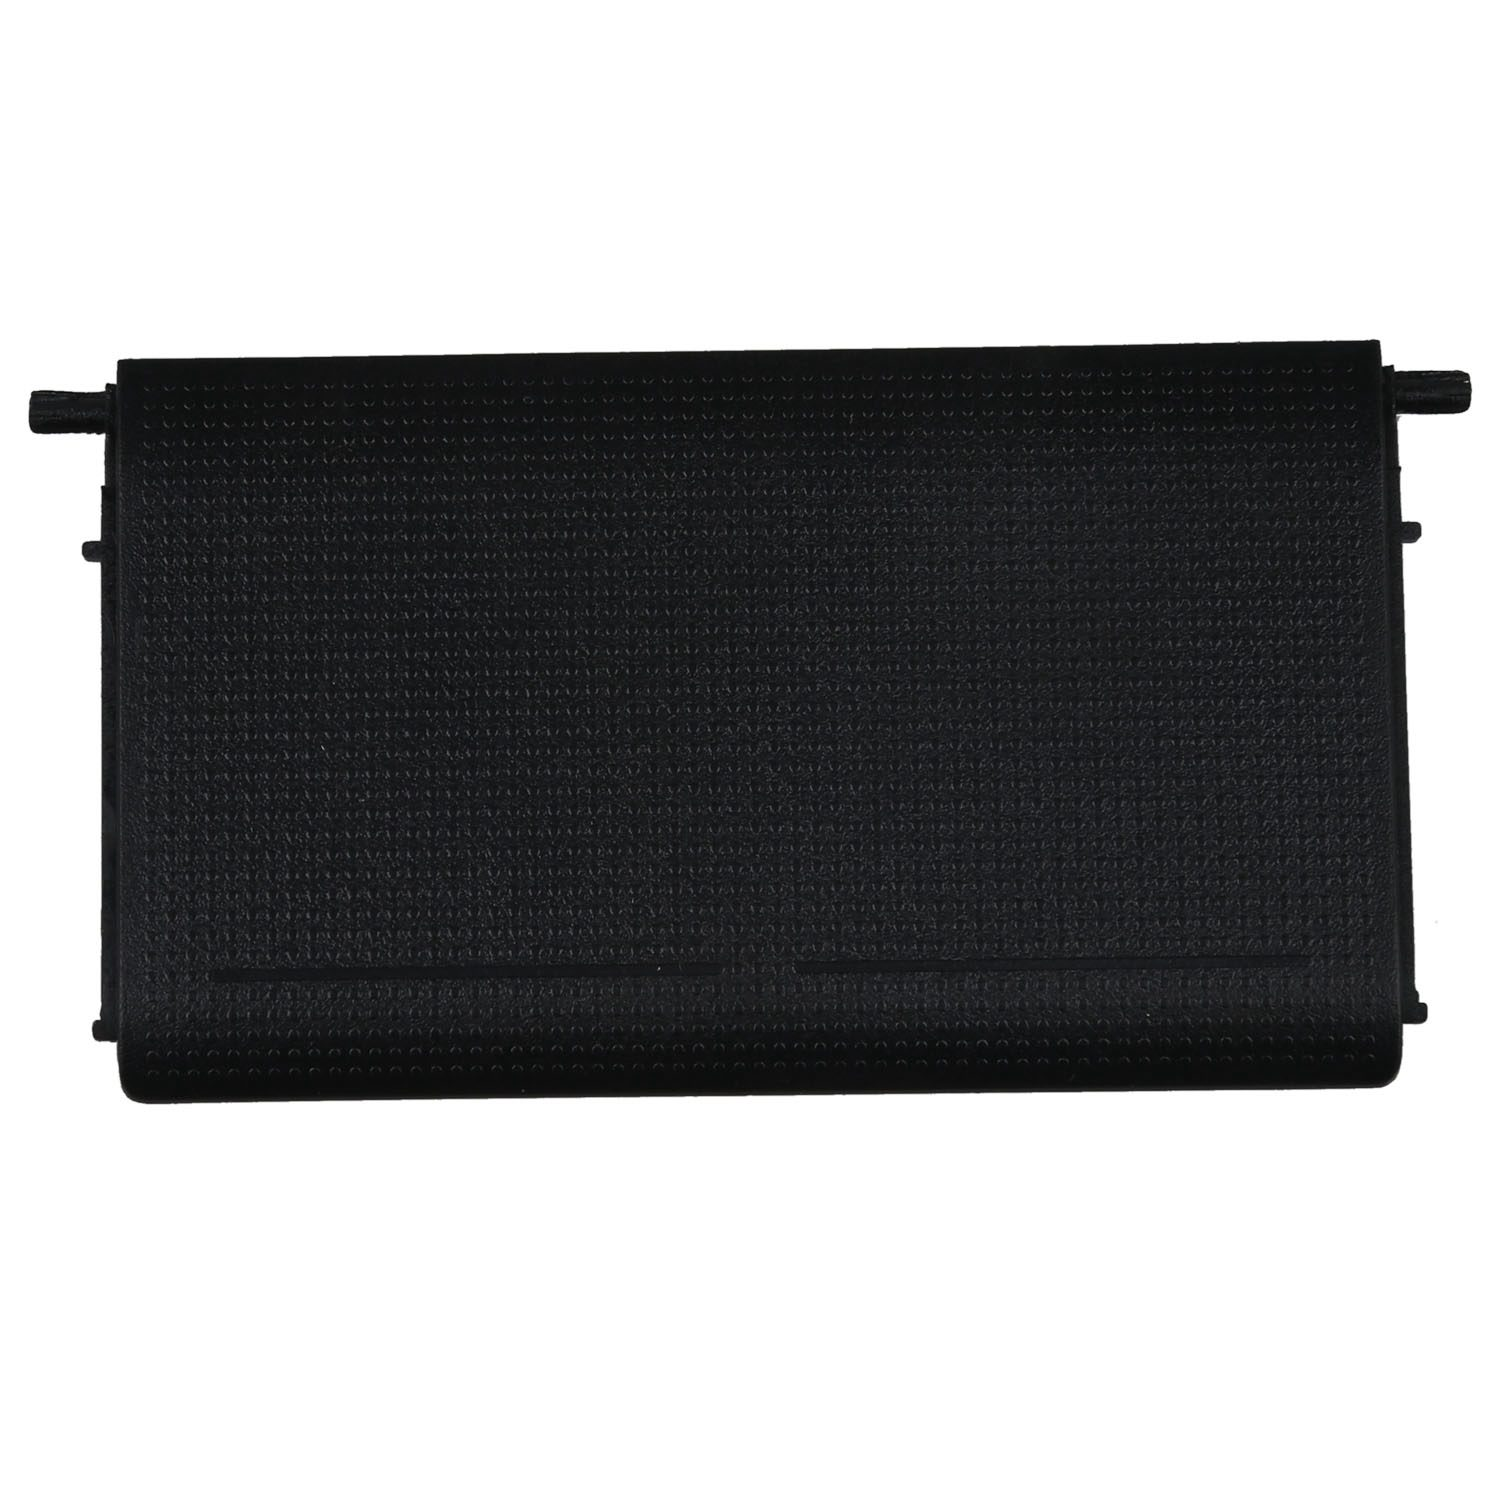 For Thinkpad Laptop Touch Pad Cover For X220 X230